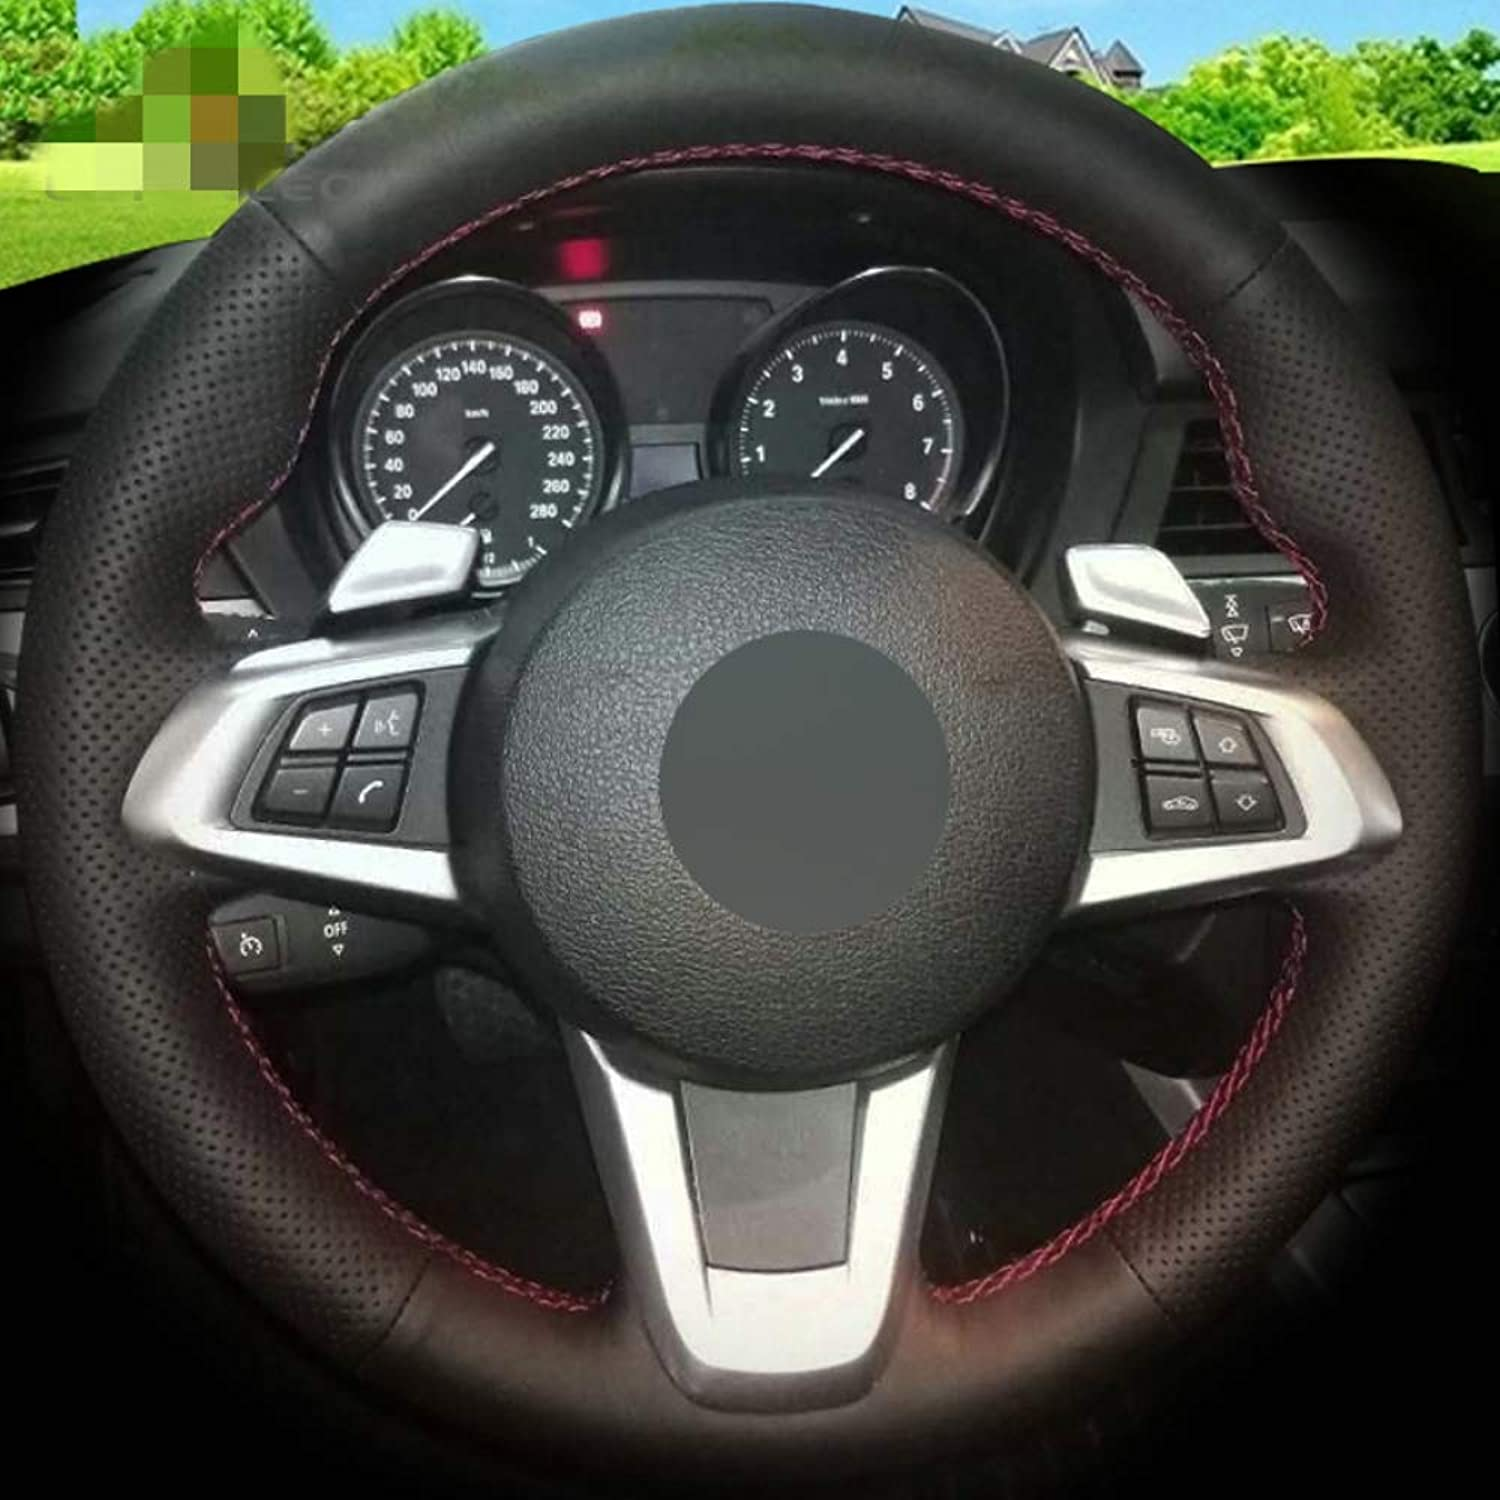 HCDSWSN Black Artificial Leather DIY Hand-Stitched Car Steering Wheel Cover for BMW E83 Z4 2009-2014